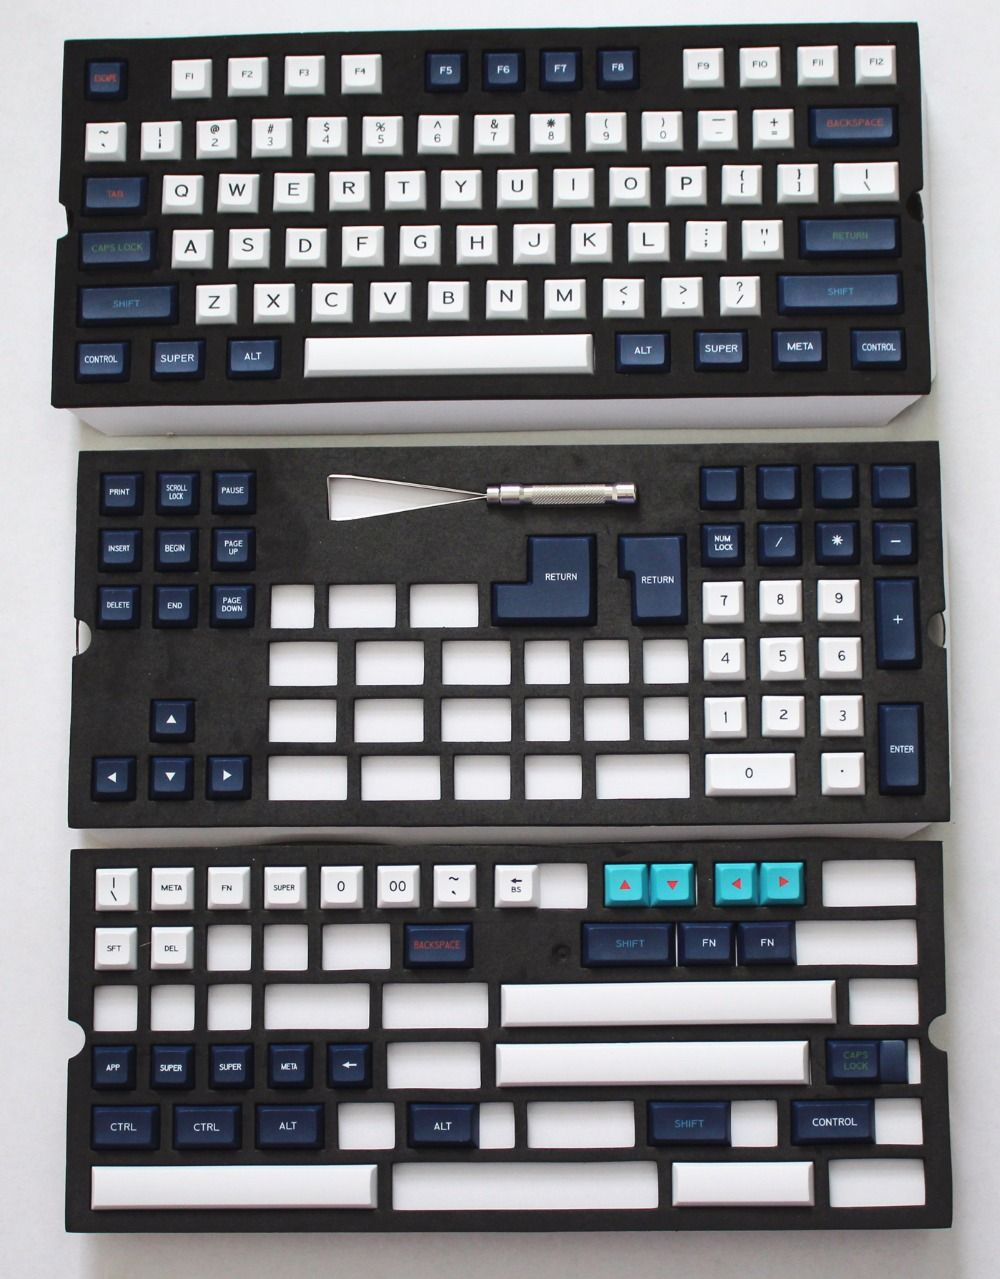 389c75f78a7 New product 150 keys DSA PBT Perfect Arc Spherical Keycap Dye-Sublimated  Cherry MX Switch Keycaps for Mechanical Gaming Keyboard